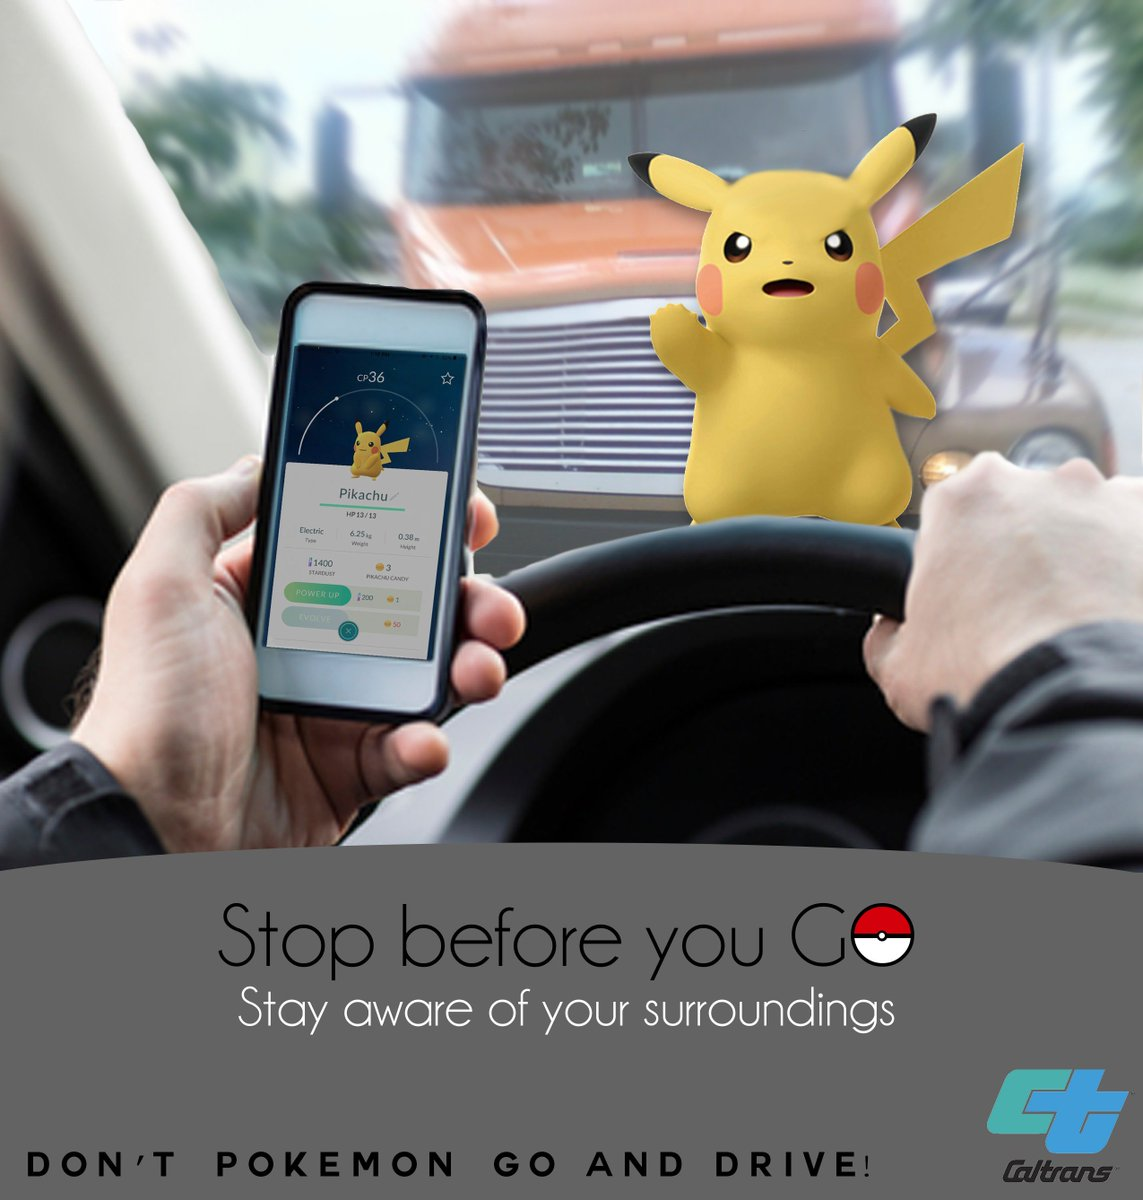 Dont Pokemon Go and Drive, Keep your eyes one the road!! #PokemonGO #PokemonGoChallenge https://t.co/pau89huoy1